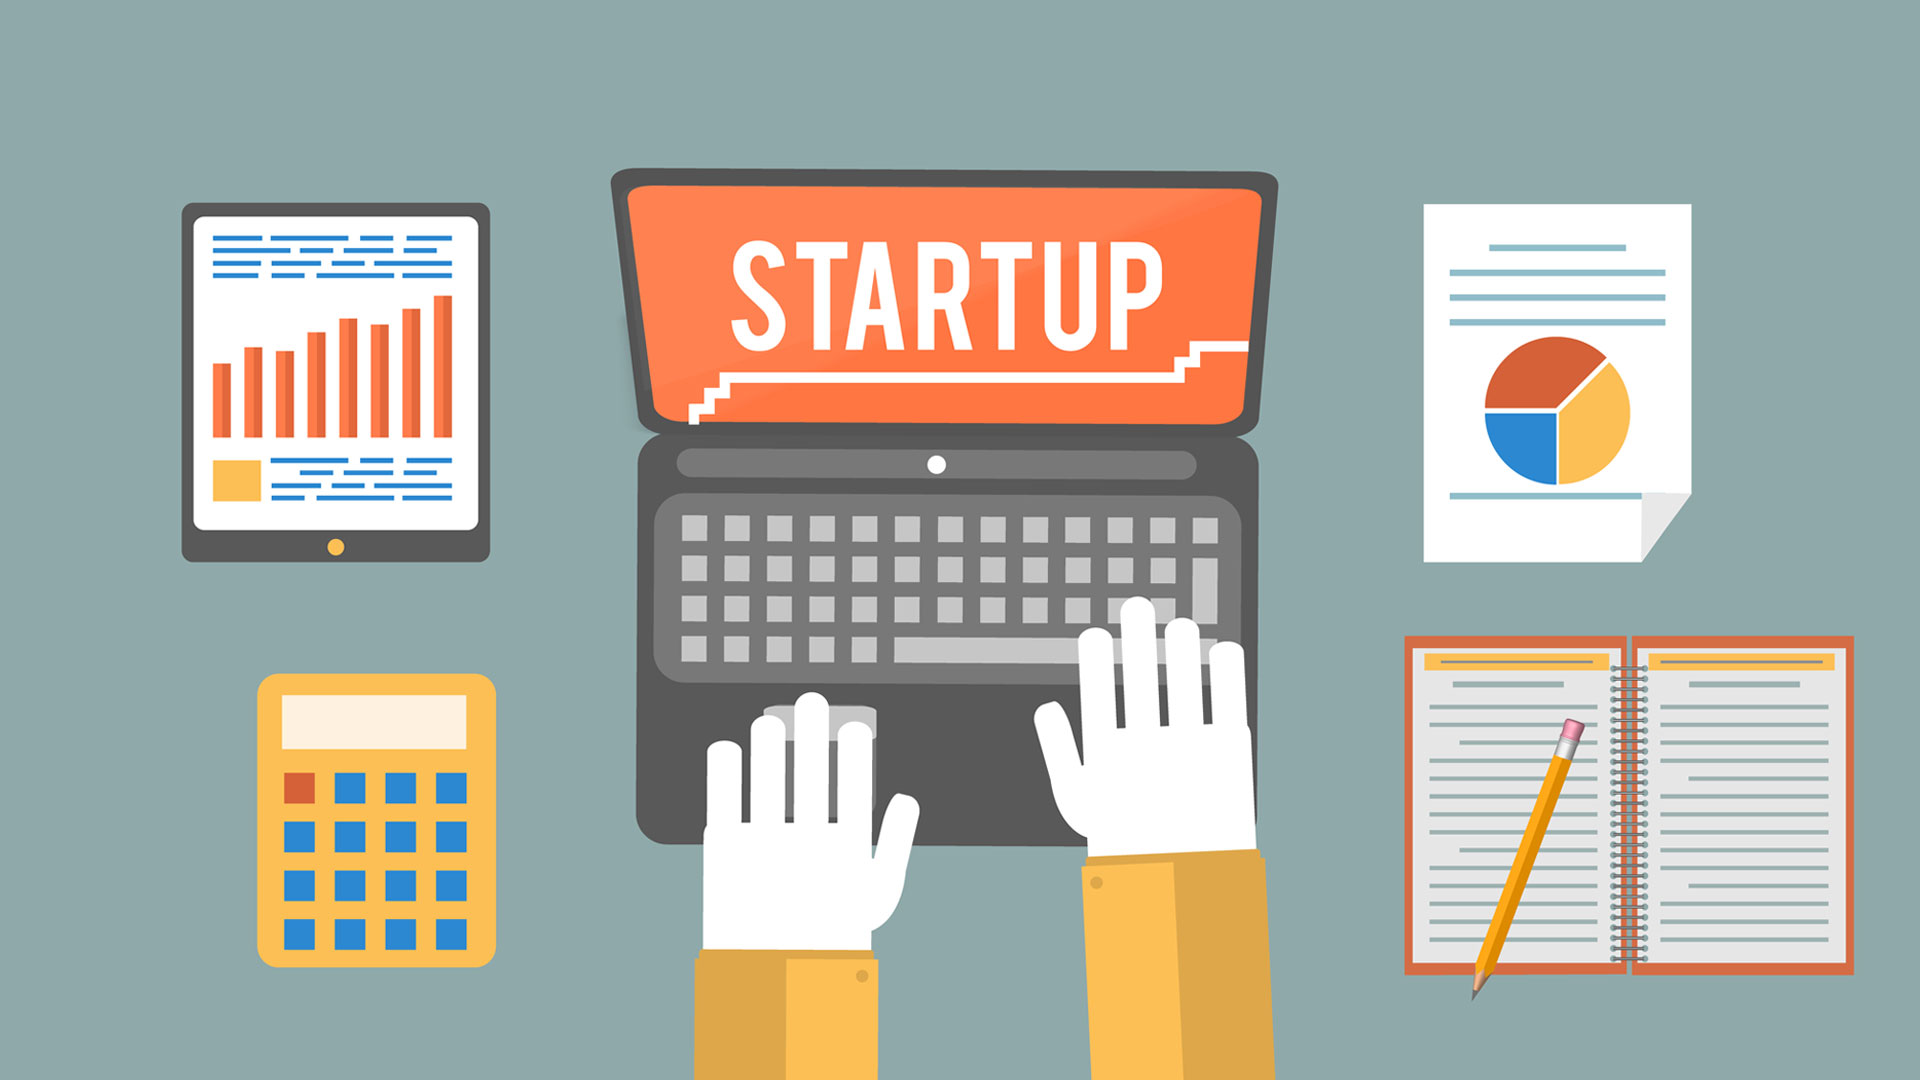 Self-Promote Your Startup